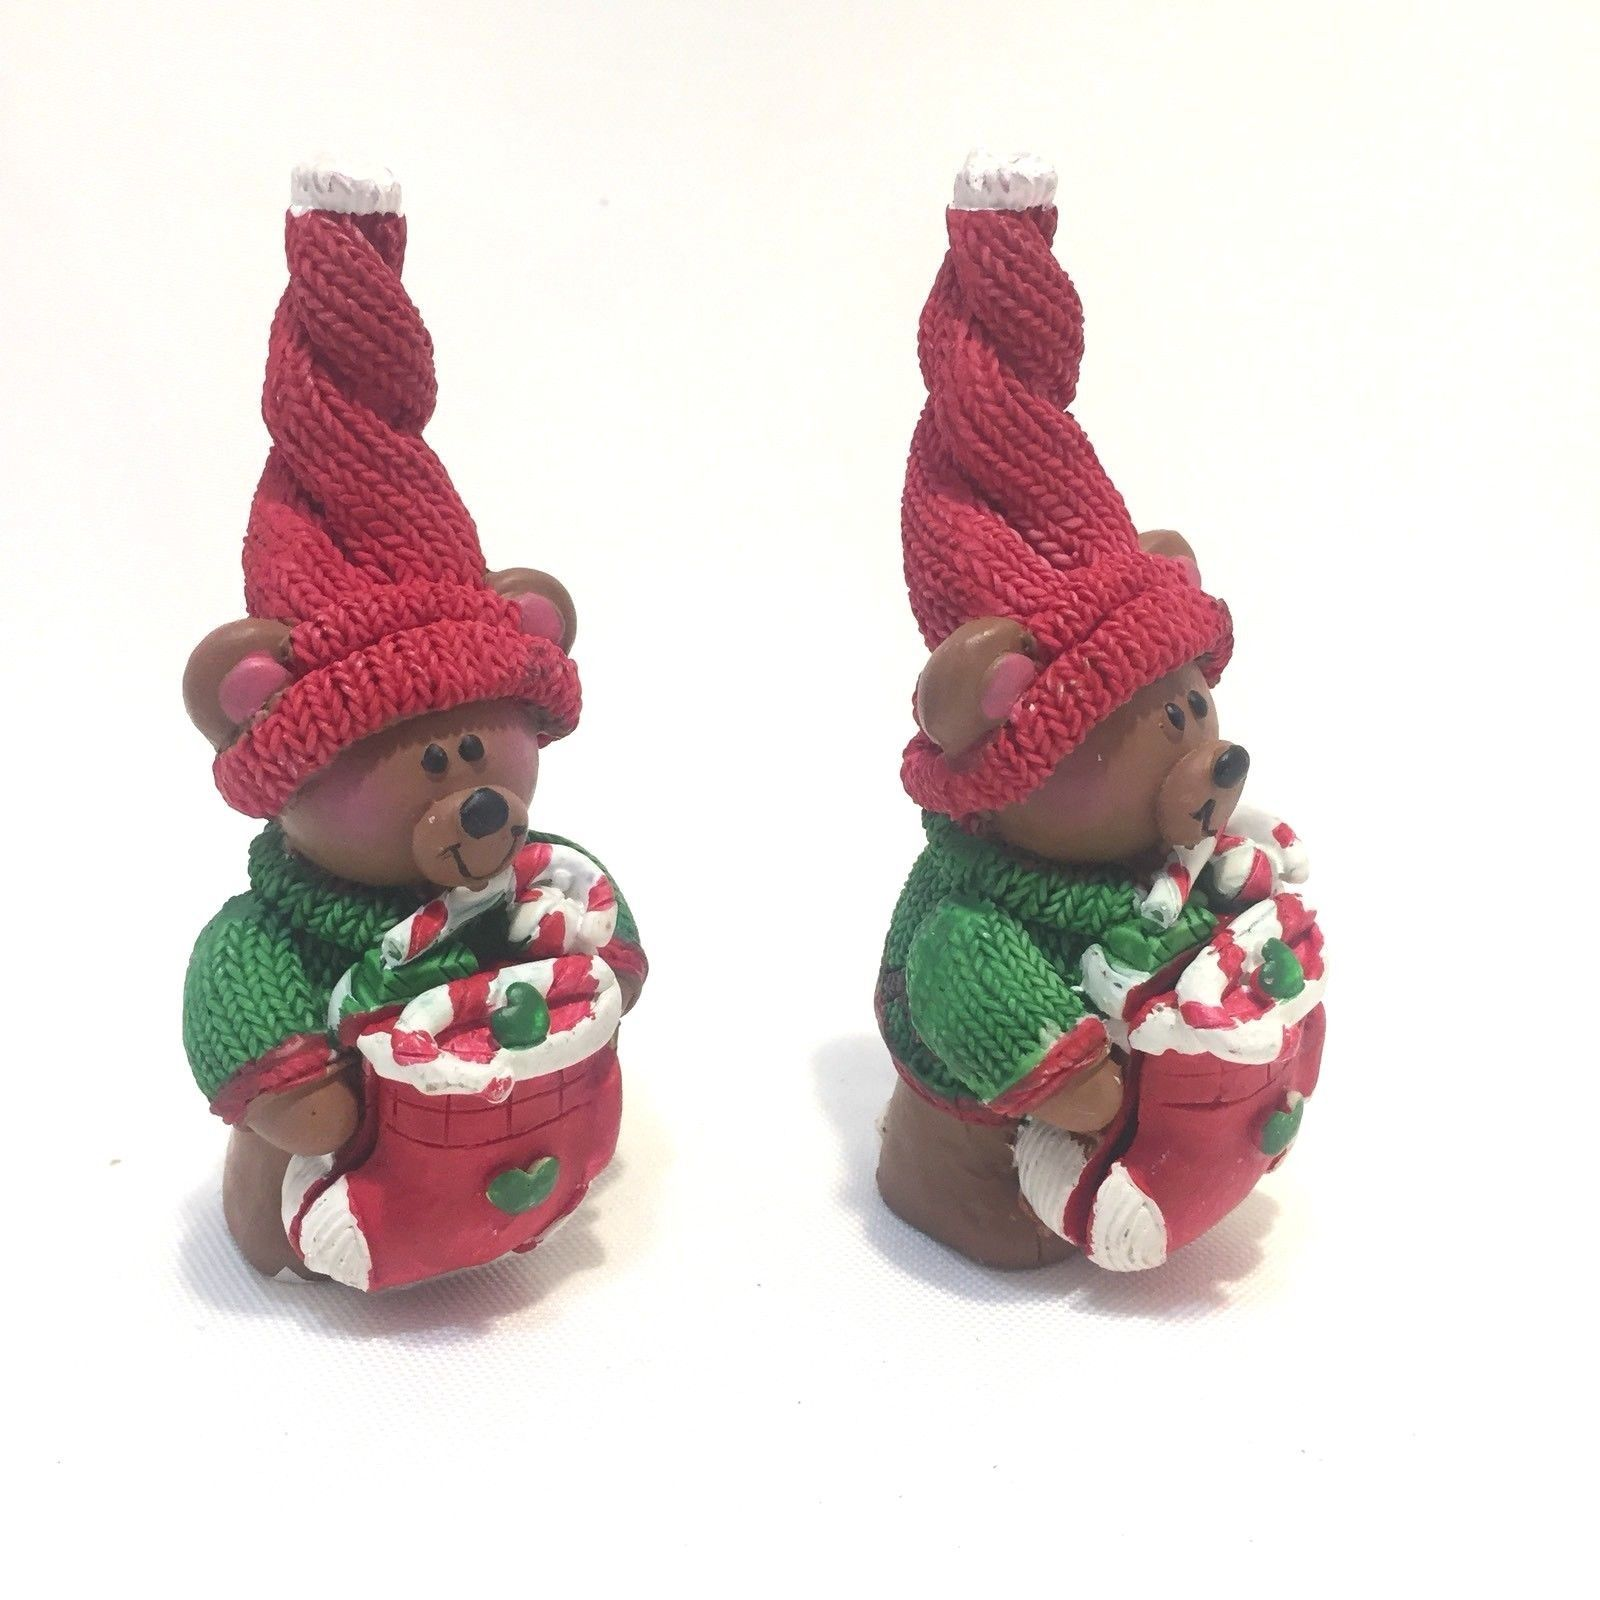 Teddy Bear Christmas Elves Figurines Knit Hat Candy Cane Stocking